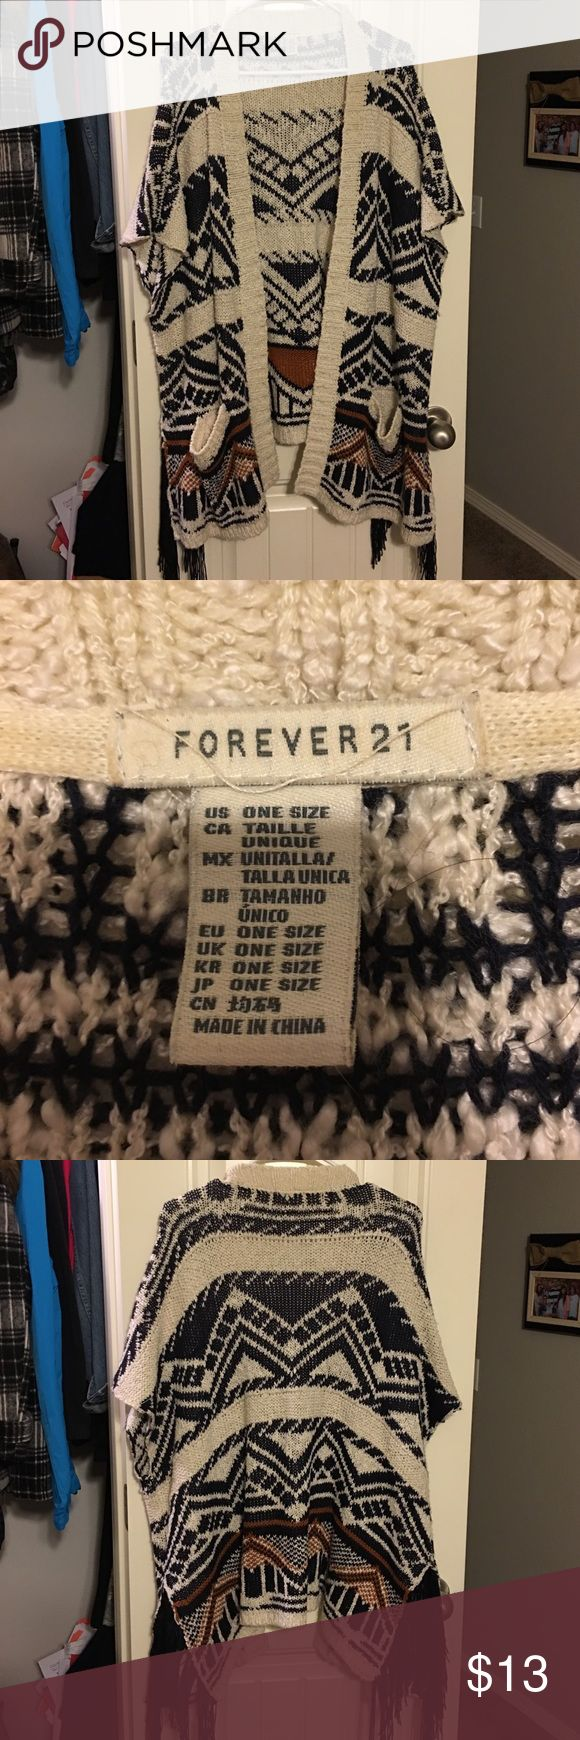 Women's Aztec print cardigan Women's Aztec print cardigan with fringe sides. Size One Size. Brand Forever 21. Forever 21 Sweaters Cardigans